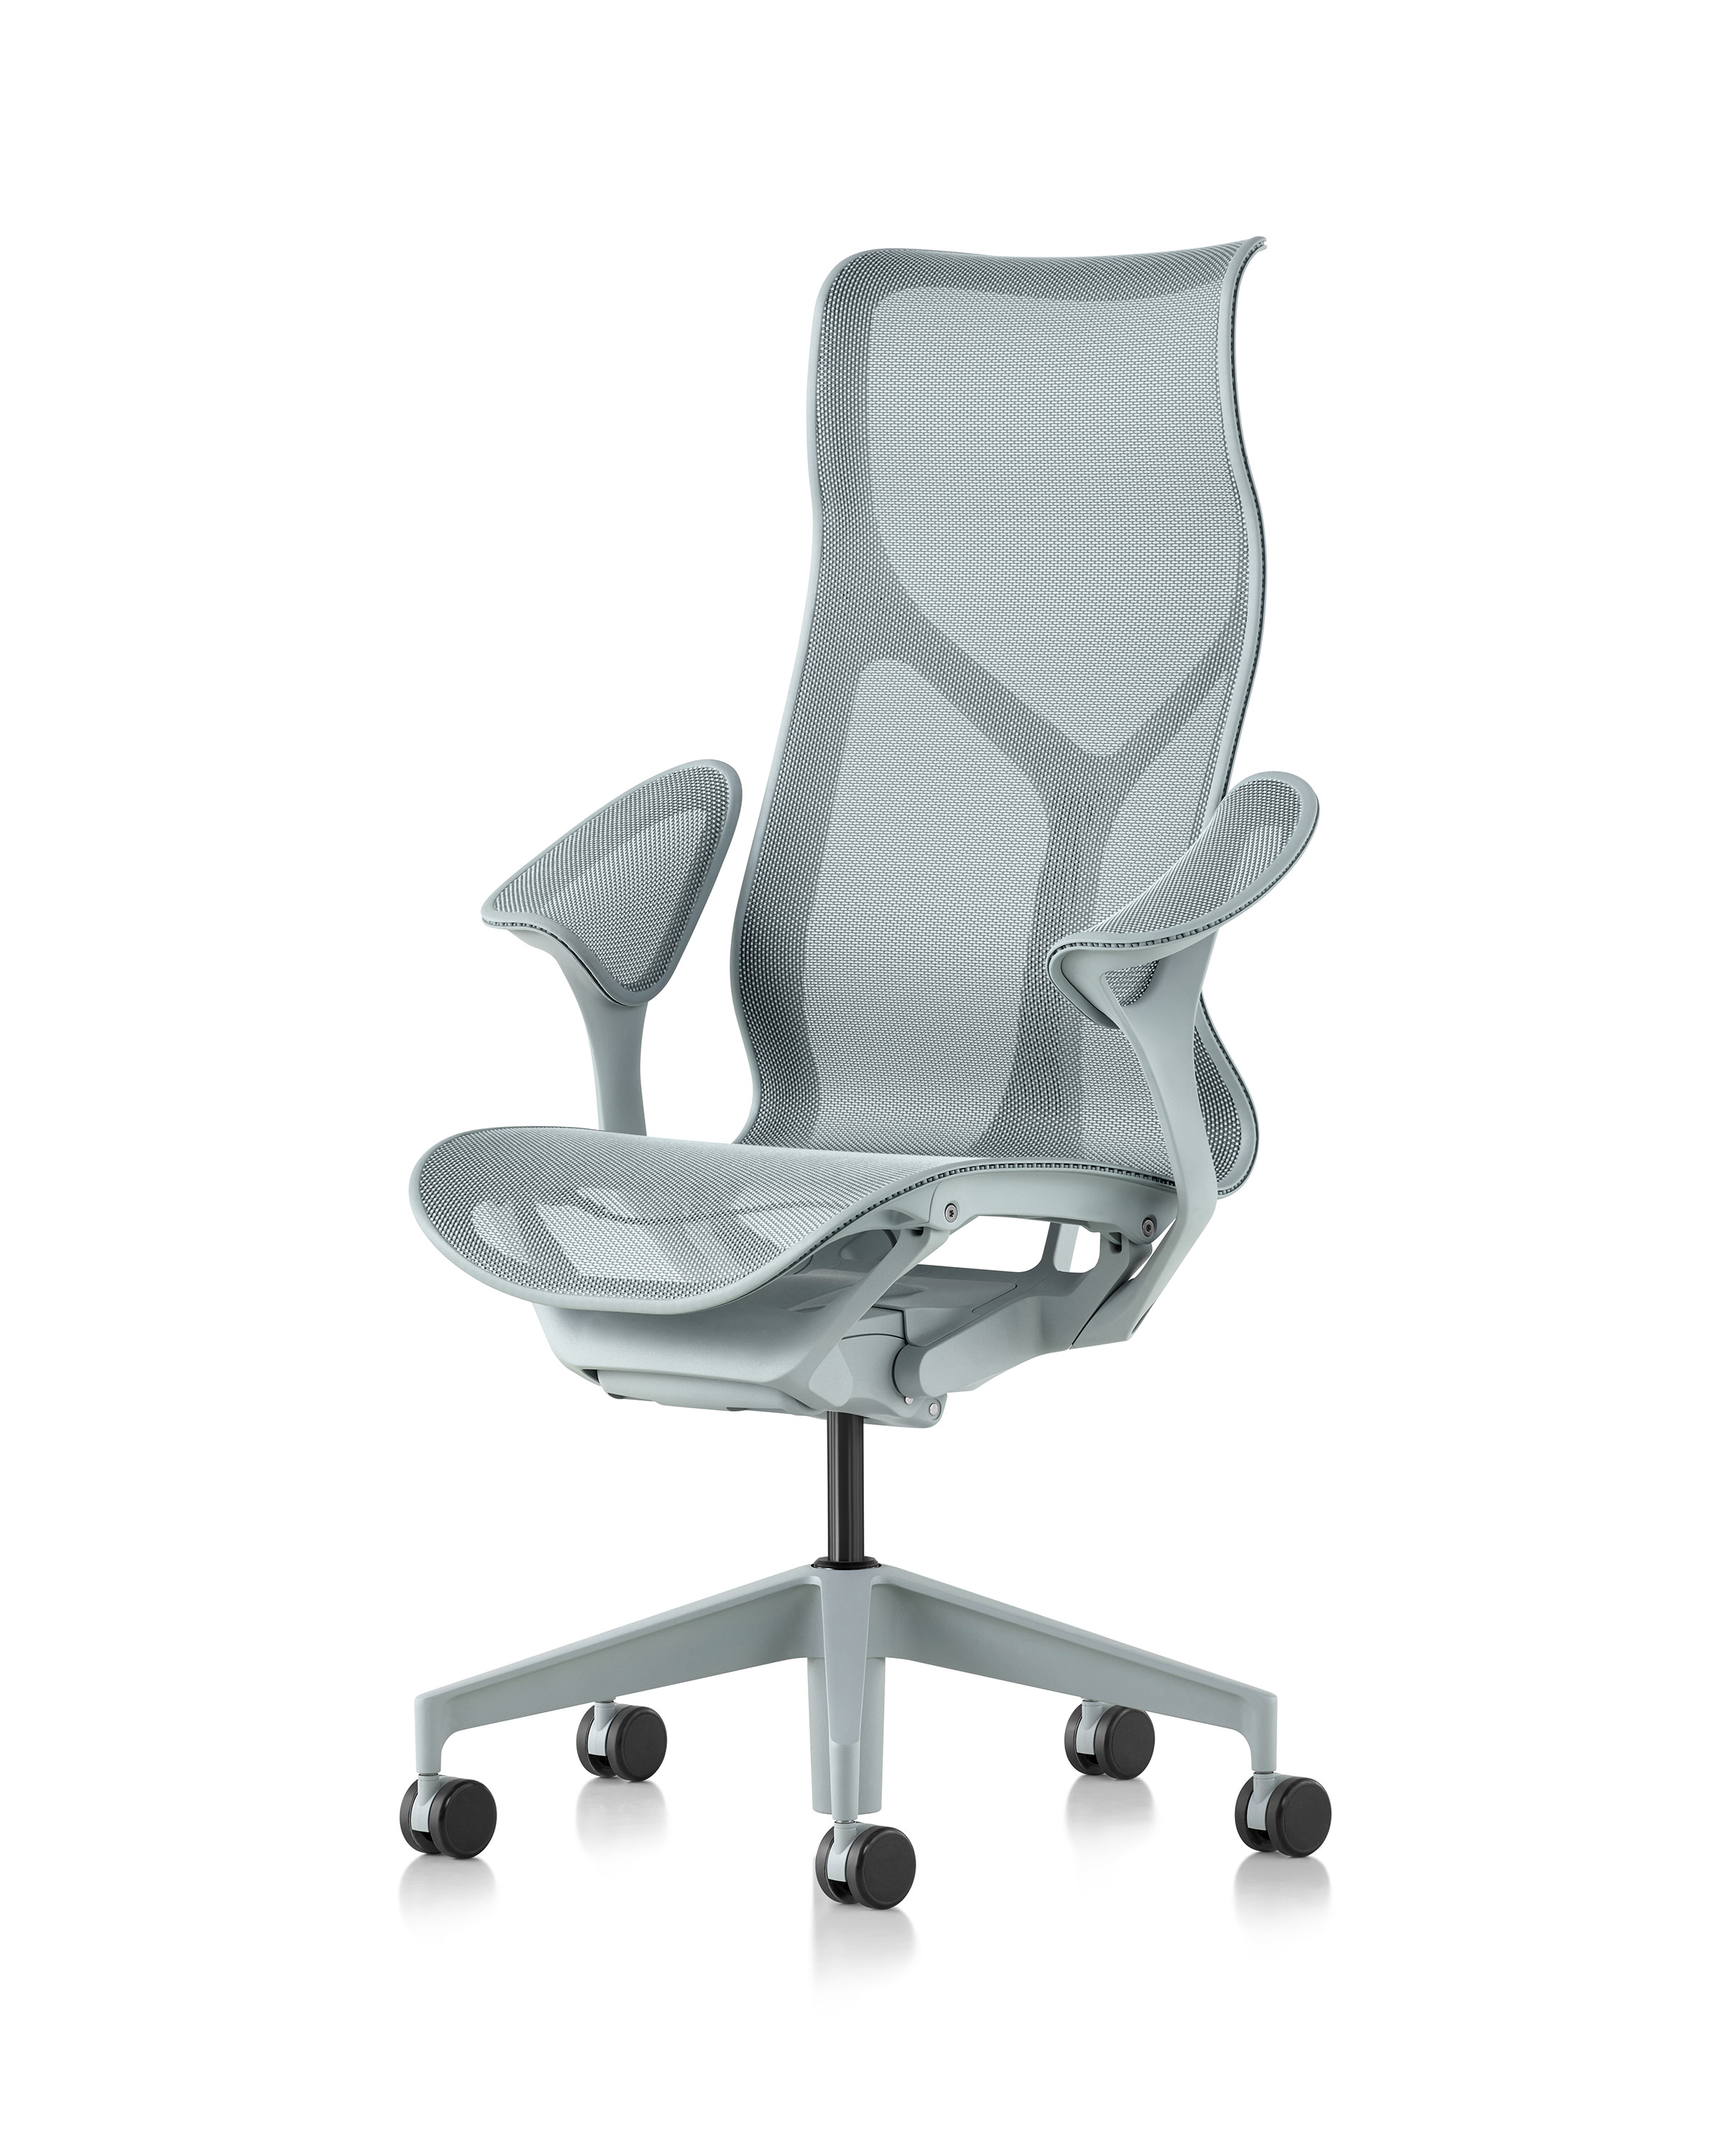 Image of Herman Miller Cosm High Back Chair